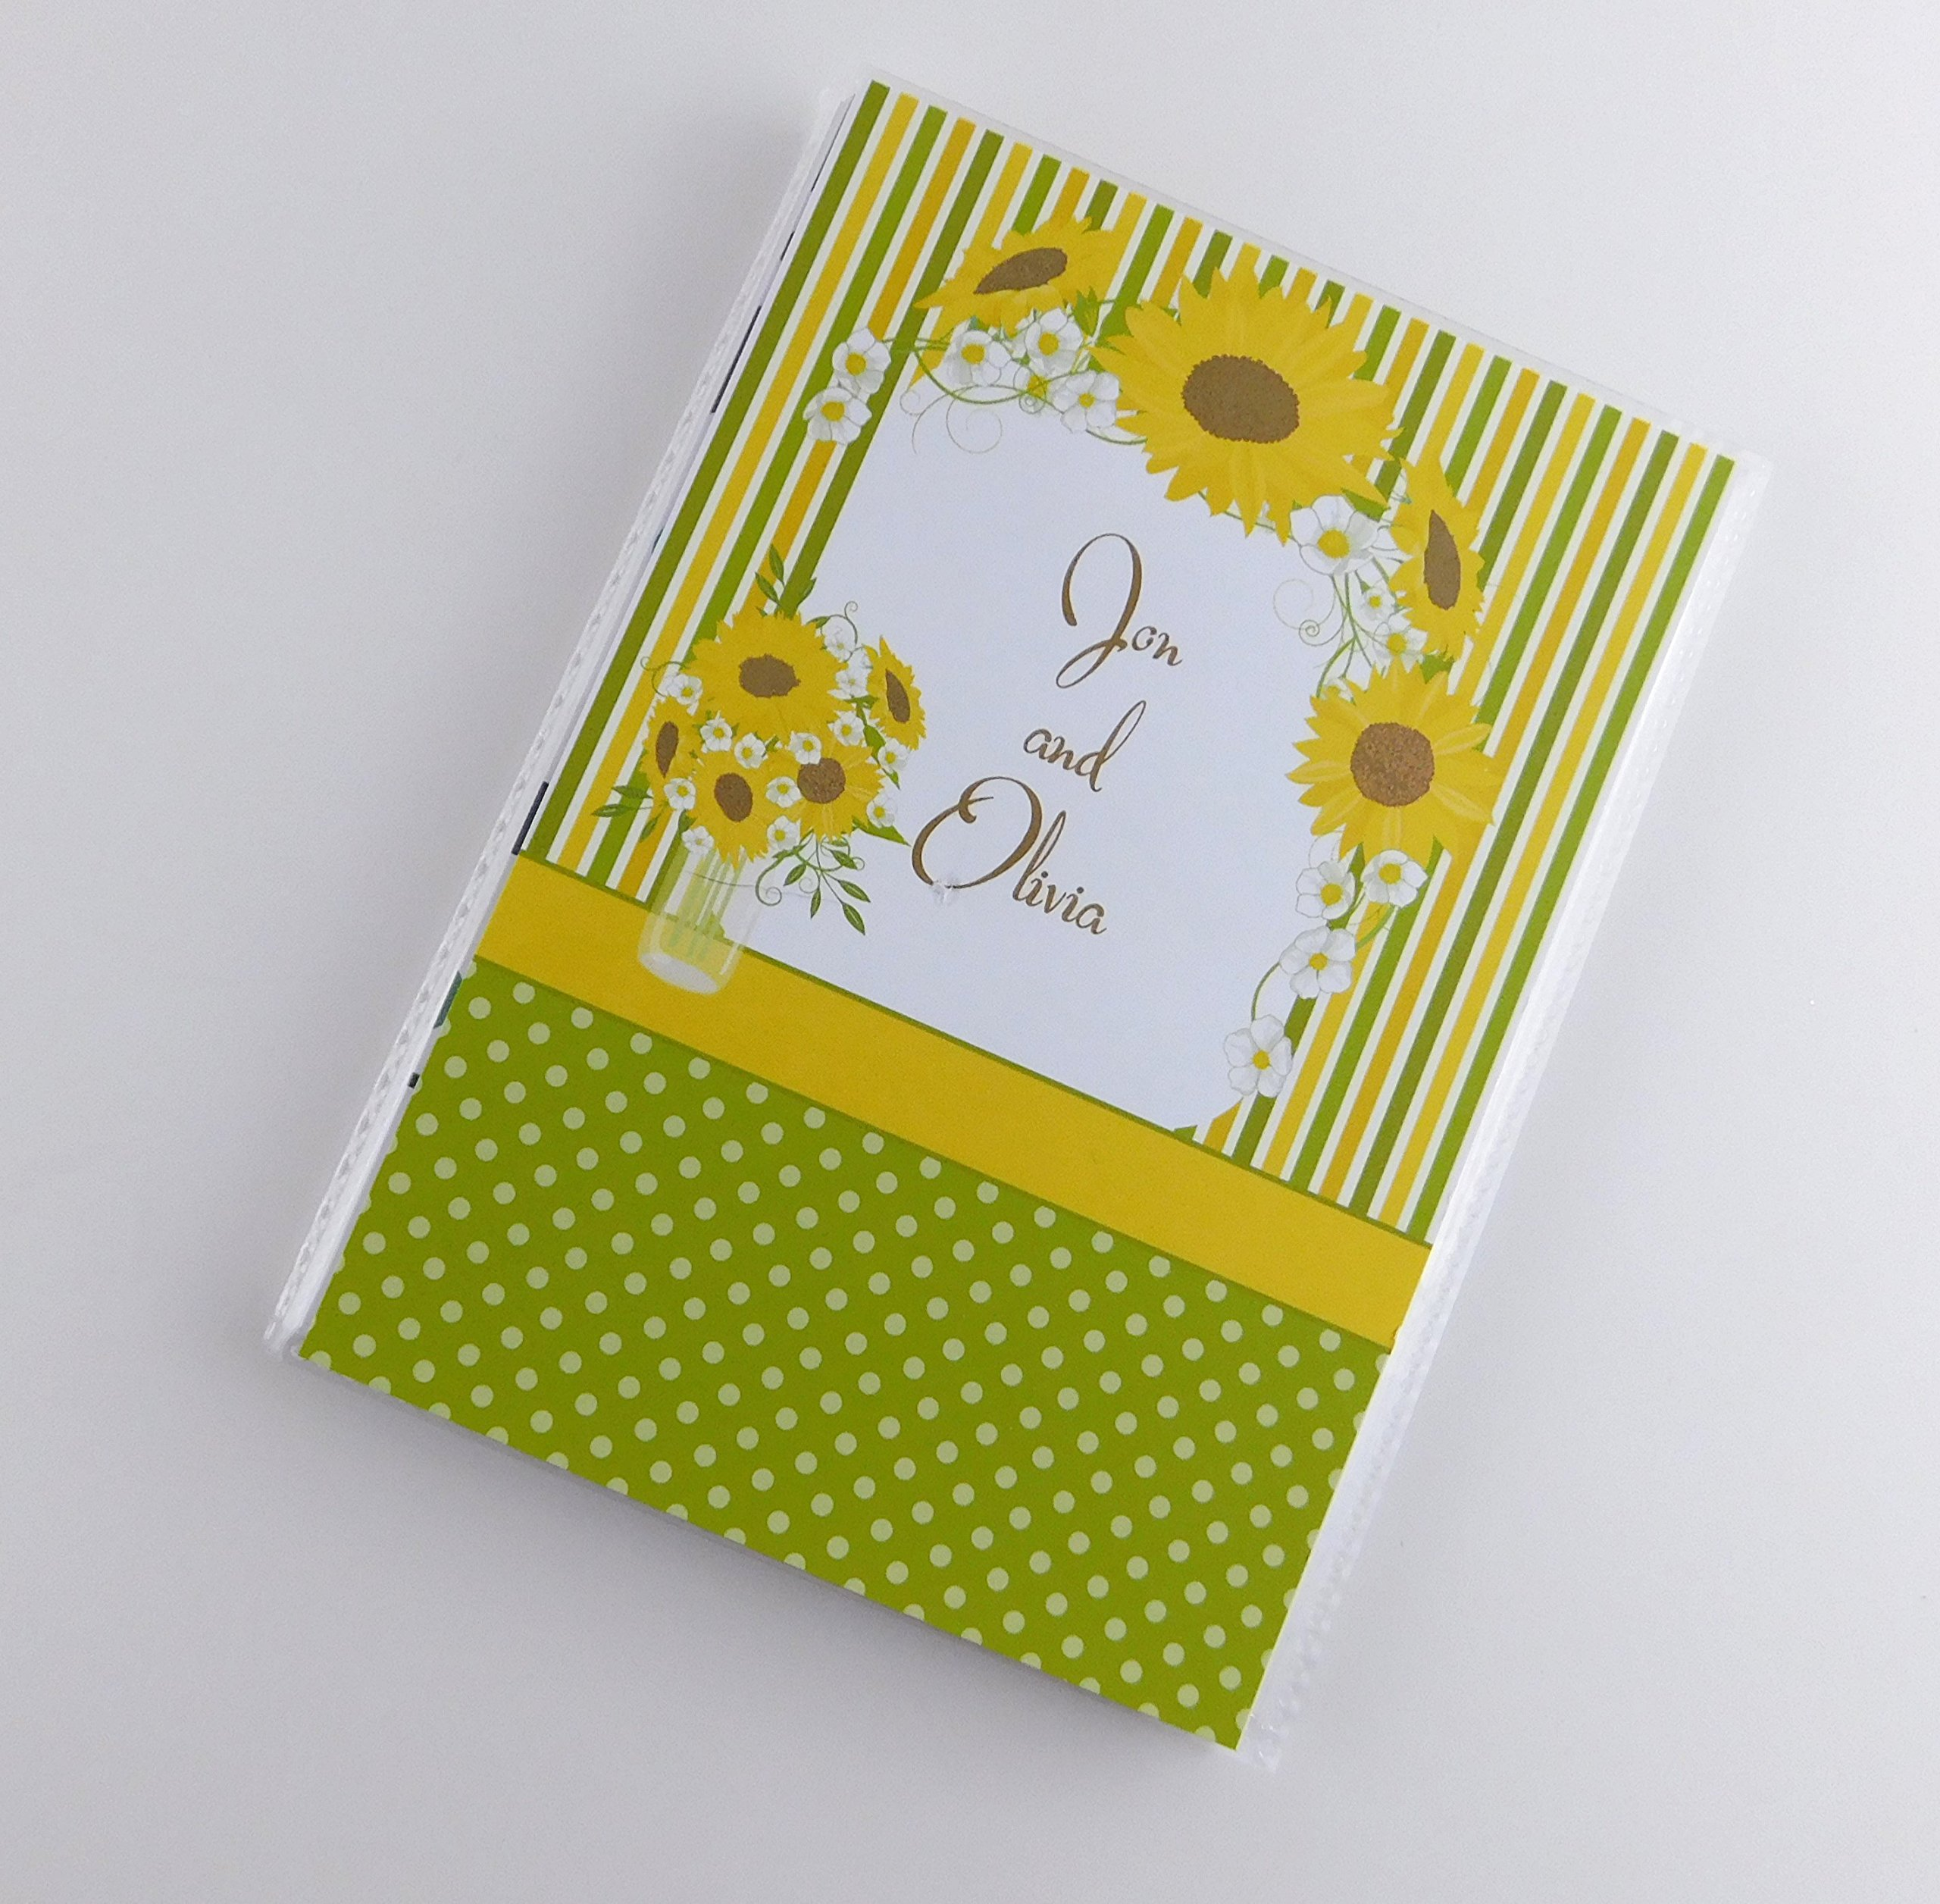 Family Photo Album IA#698 Sunflower Country Decor Mason Jar Personalized with Name Personalized Wedding Anniversary Engagement 4x6 or 5x7 Pictures Custom Bridal Gift